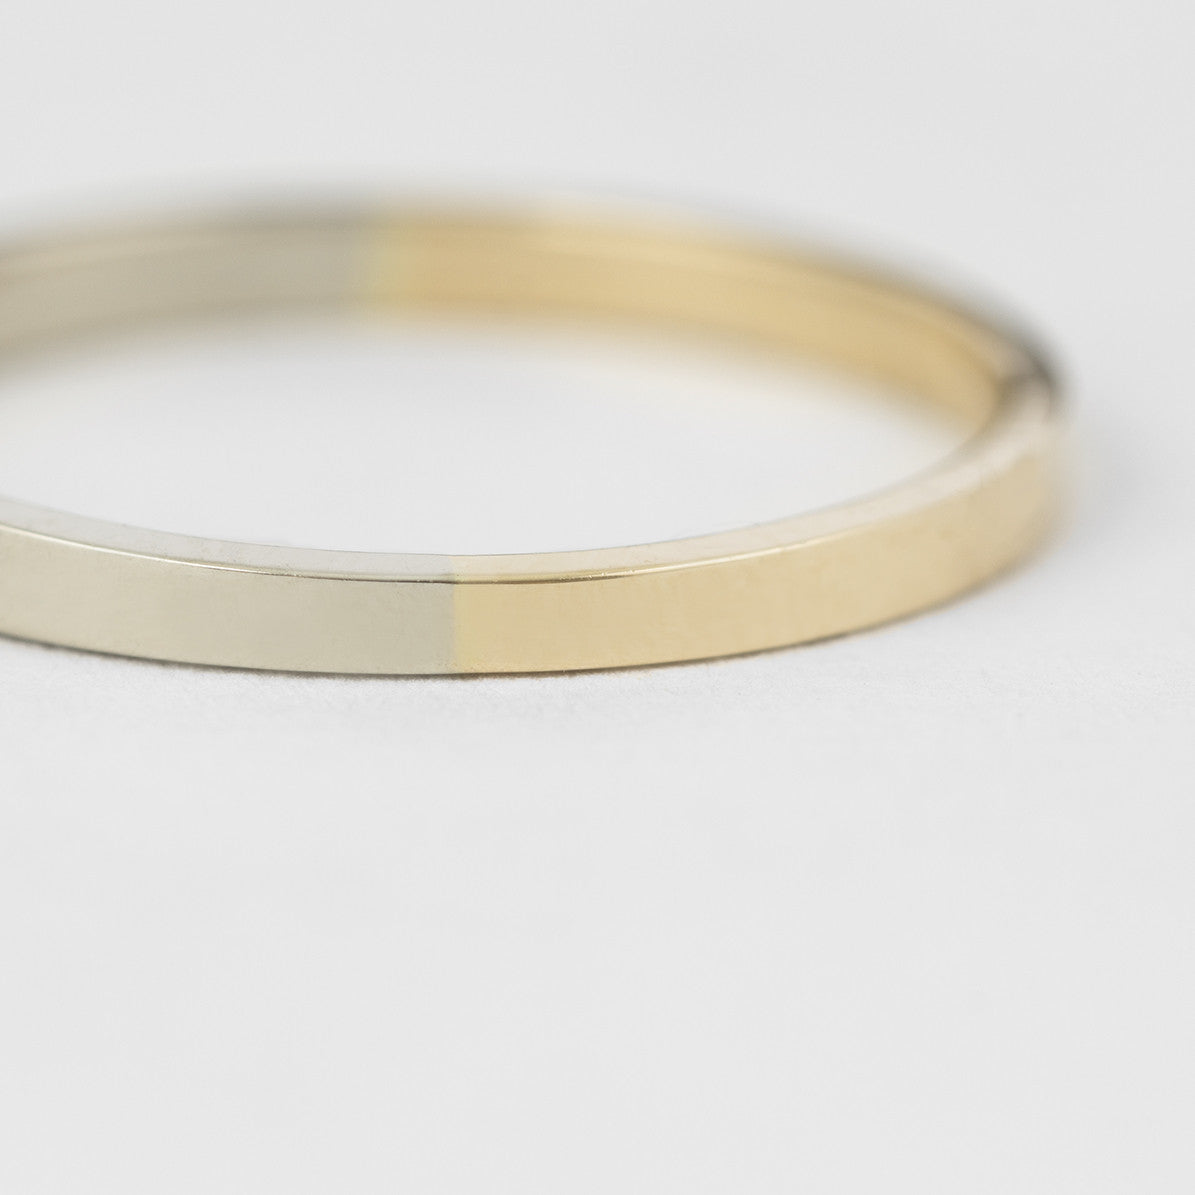 2mm Yellow and White Gold Band